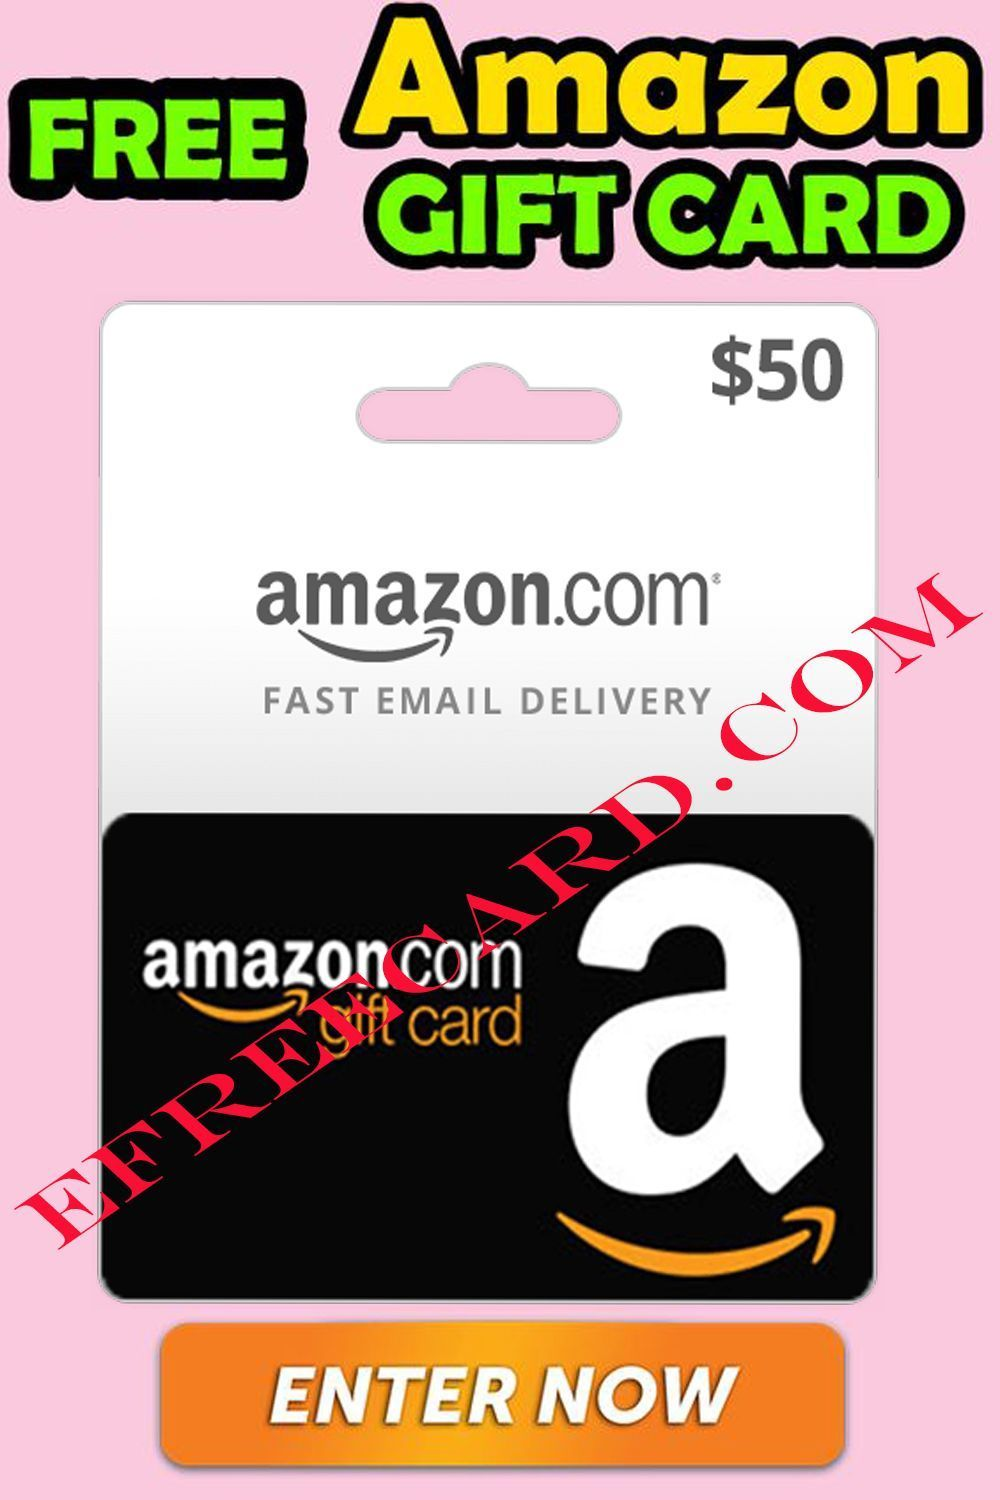 Amazon Free Gift Card Code Generator Free Online Codes Offers It S Online Gift Card Games Related Amazon Gift Card Free Free Gift Cards Amazon Gift Cards